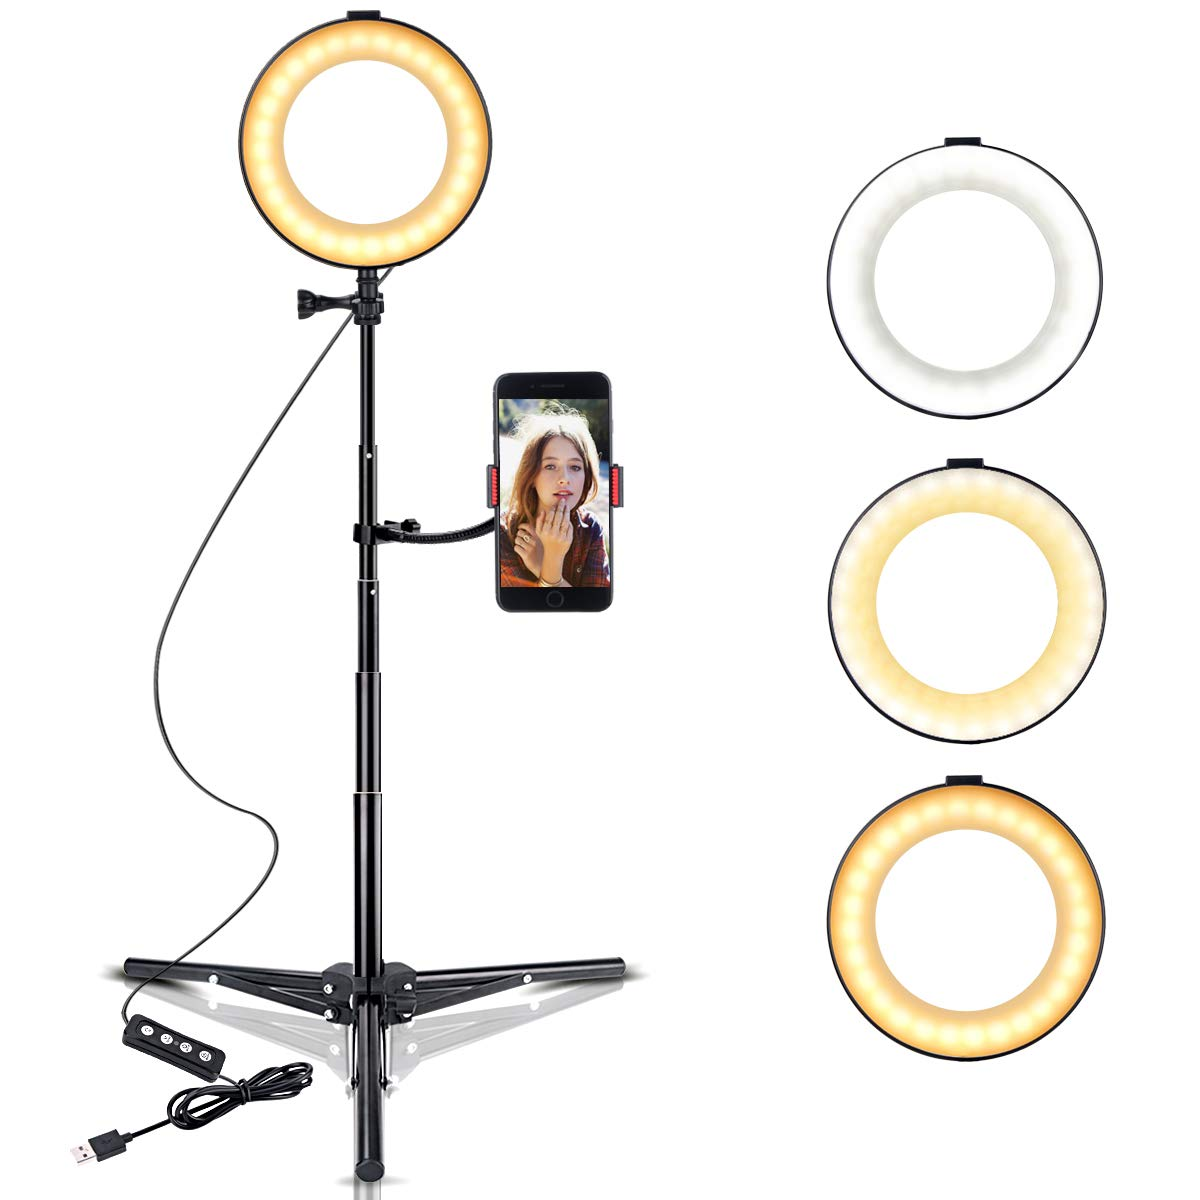 B-Land 6'' Ring Light with Tripod Stand & Cell Phone Holder for YouTube Videos, LED Selfie Light Ring Desktop Makeup Lamp with 3 Light Modes & 10 Brightness Level by B-Land